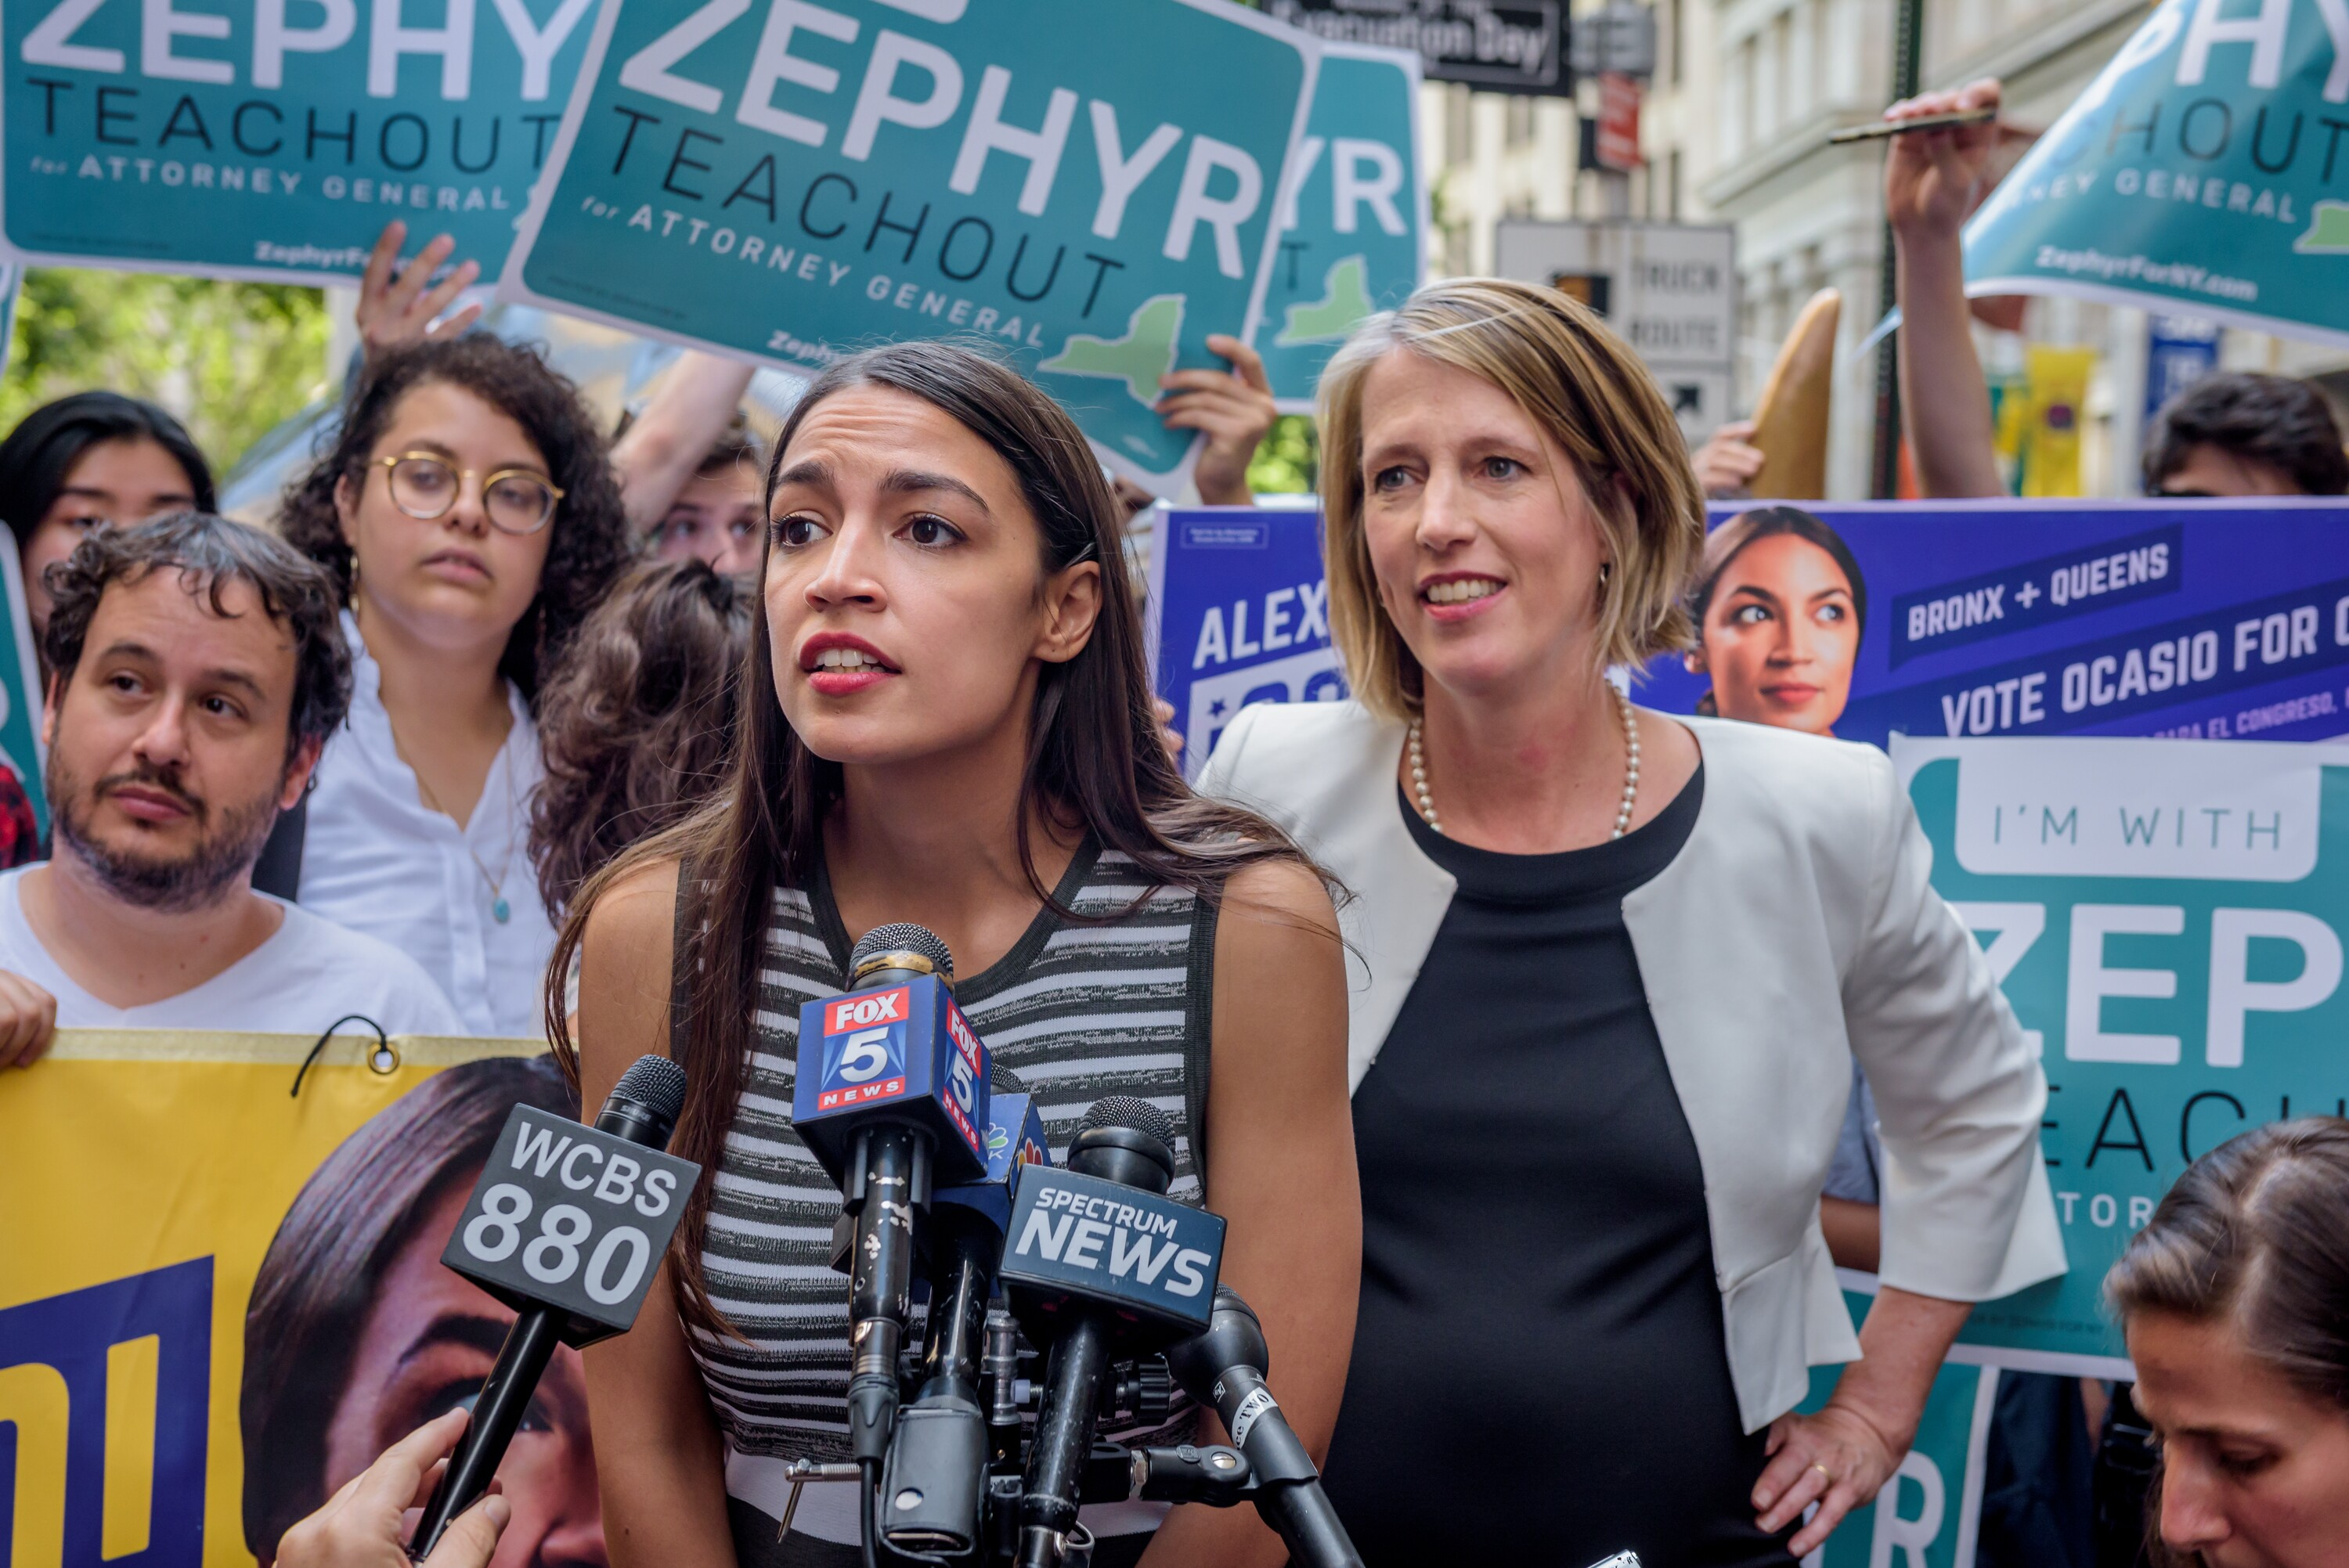 FACEBOOK SPONSORING FAR-LEFT CONFERENCE WHERE SOCIALIST OCASIO-CORTEZ WILL KEYNOTE